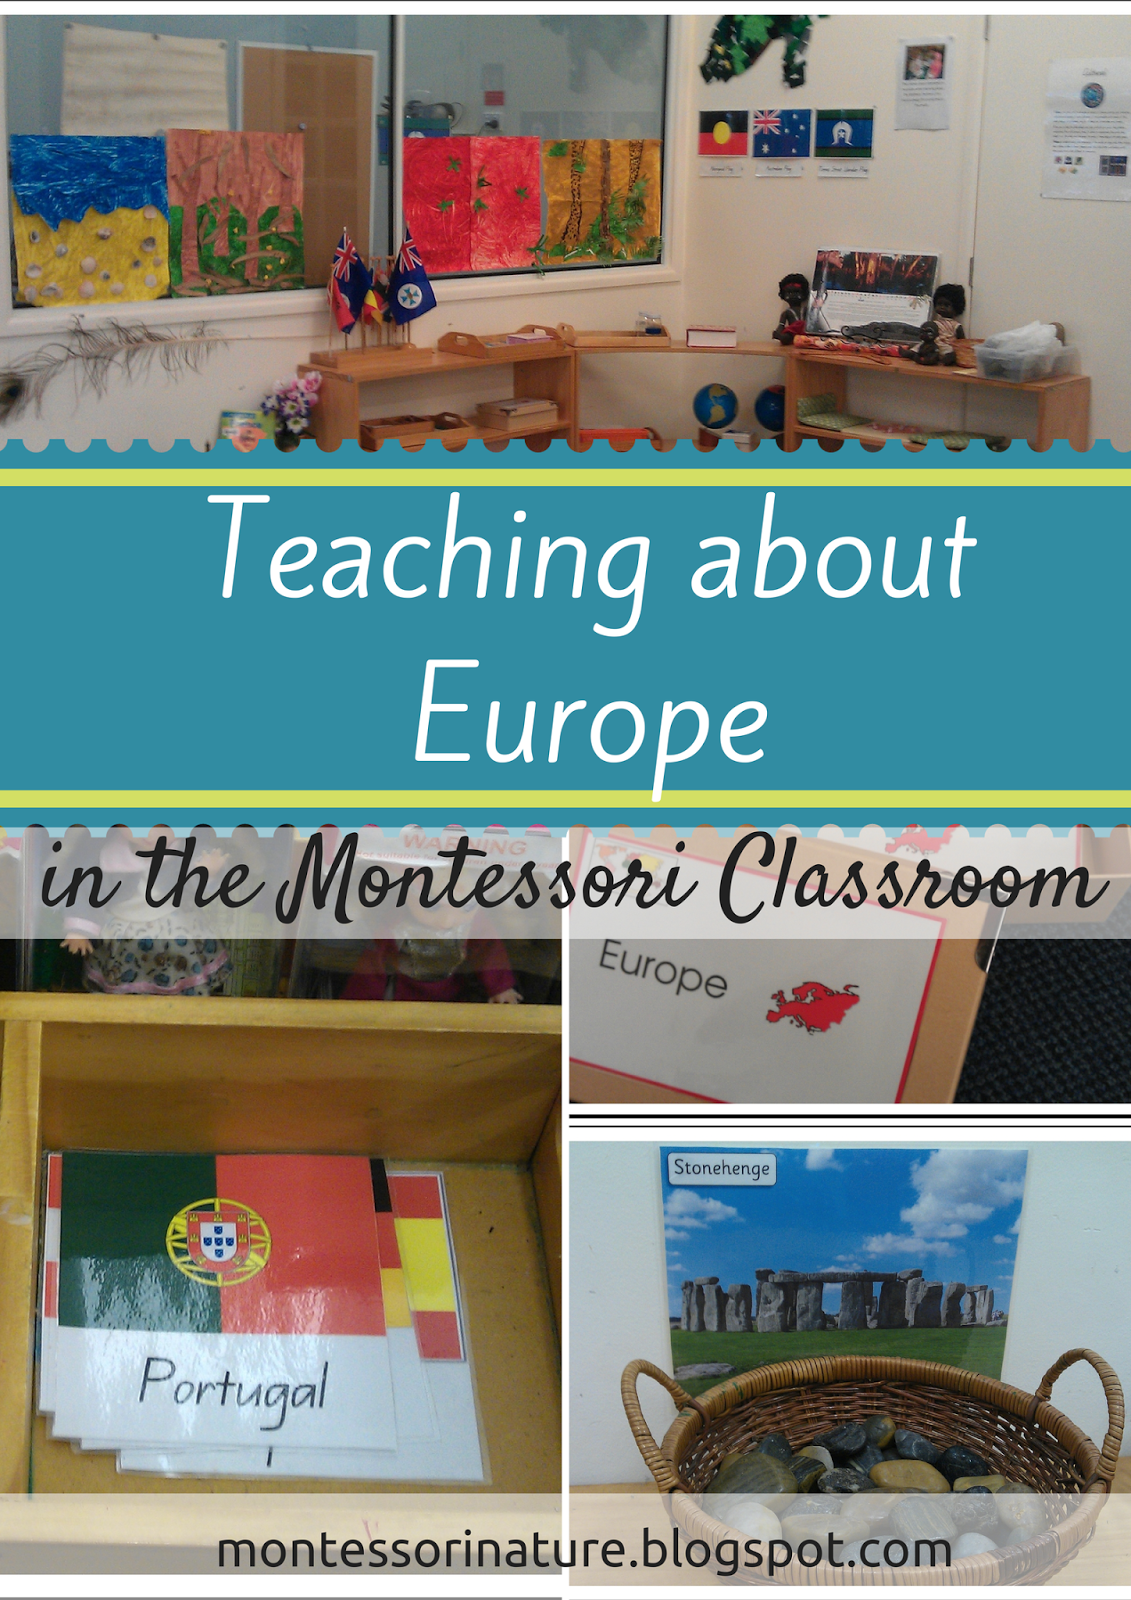 Montessori Nature Teaching About Europe In The Montessori